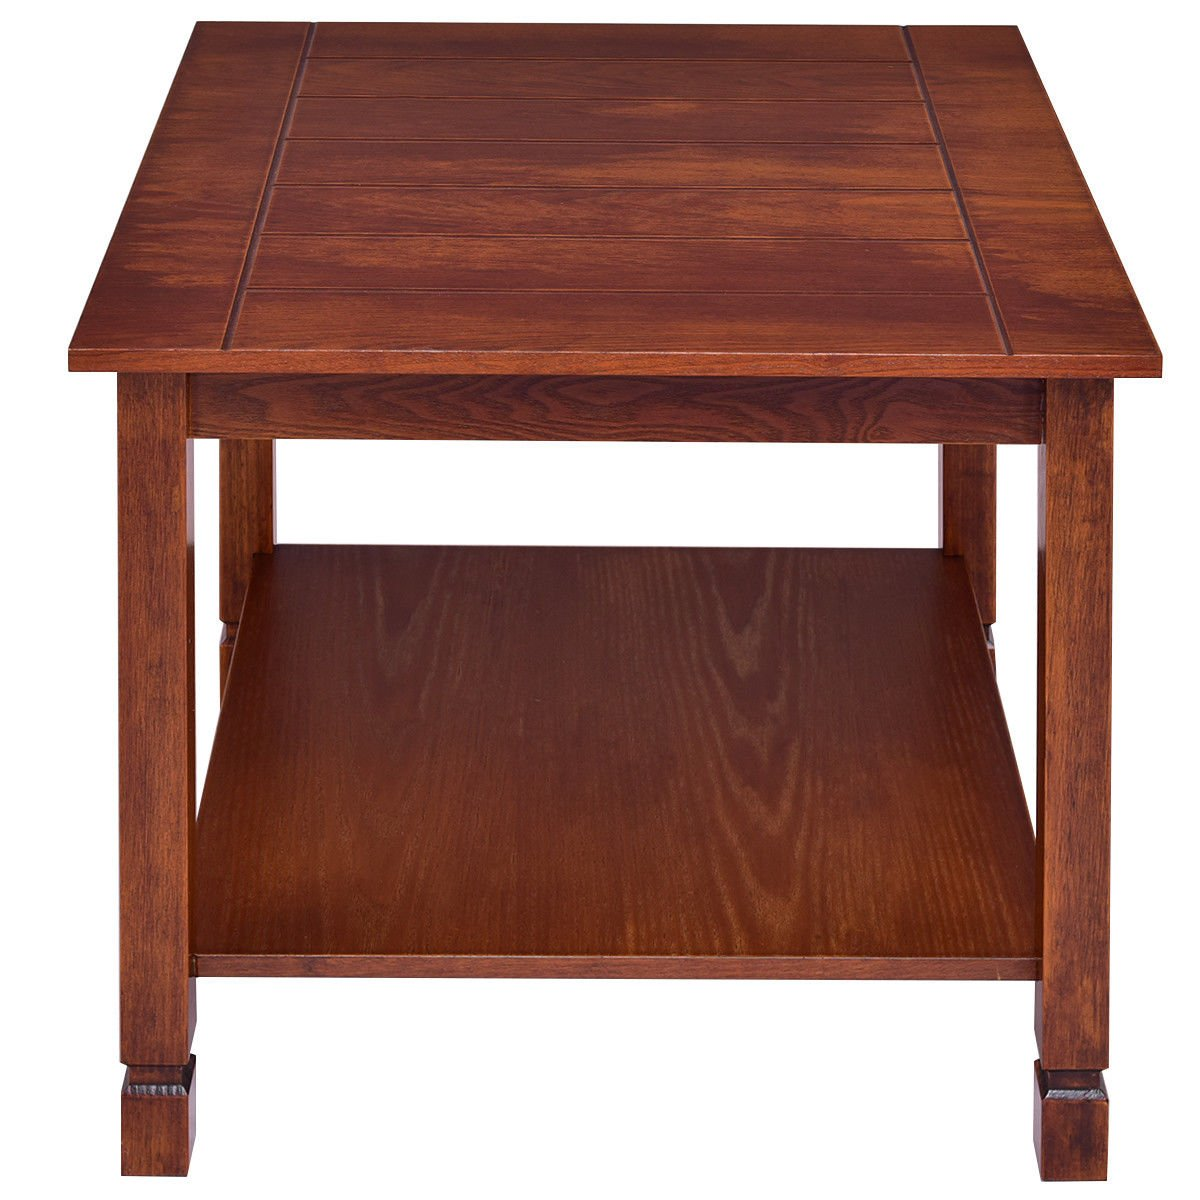 Giantex Pine Wood End Table with Shelf, 2-Tier Side Table with Storage Bedside Sofa Table for Living Room, Bedroom, Solid Sturcture Eco-Friendly Material Espresso Coffee Table Nightstand (Walnut) by Giantex (Image #5)